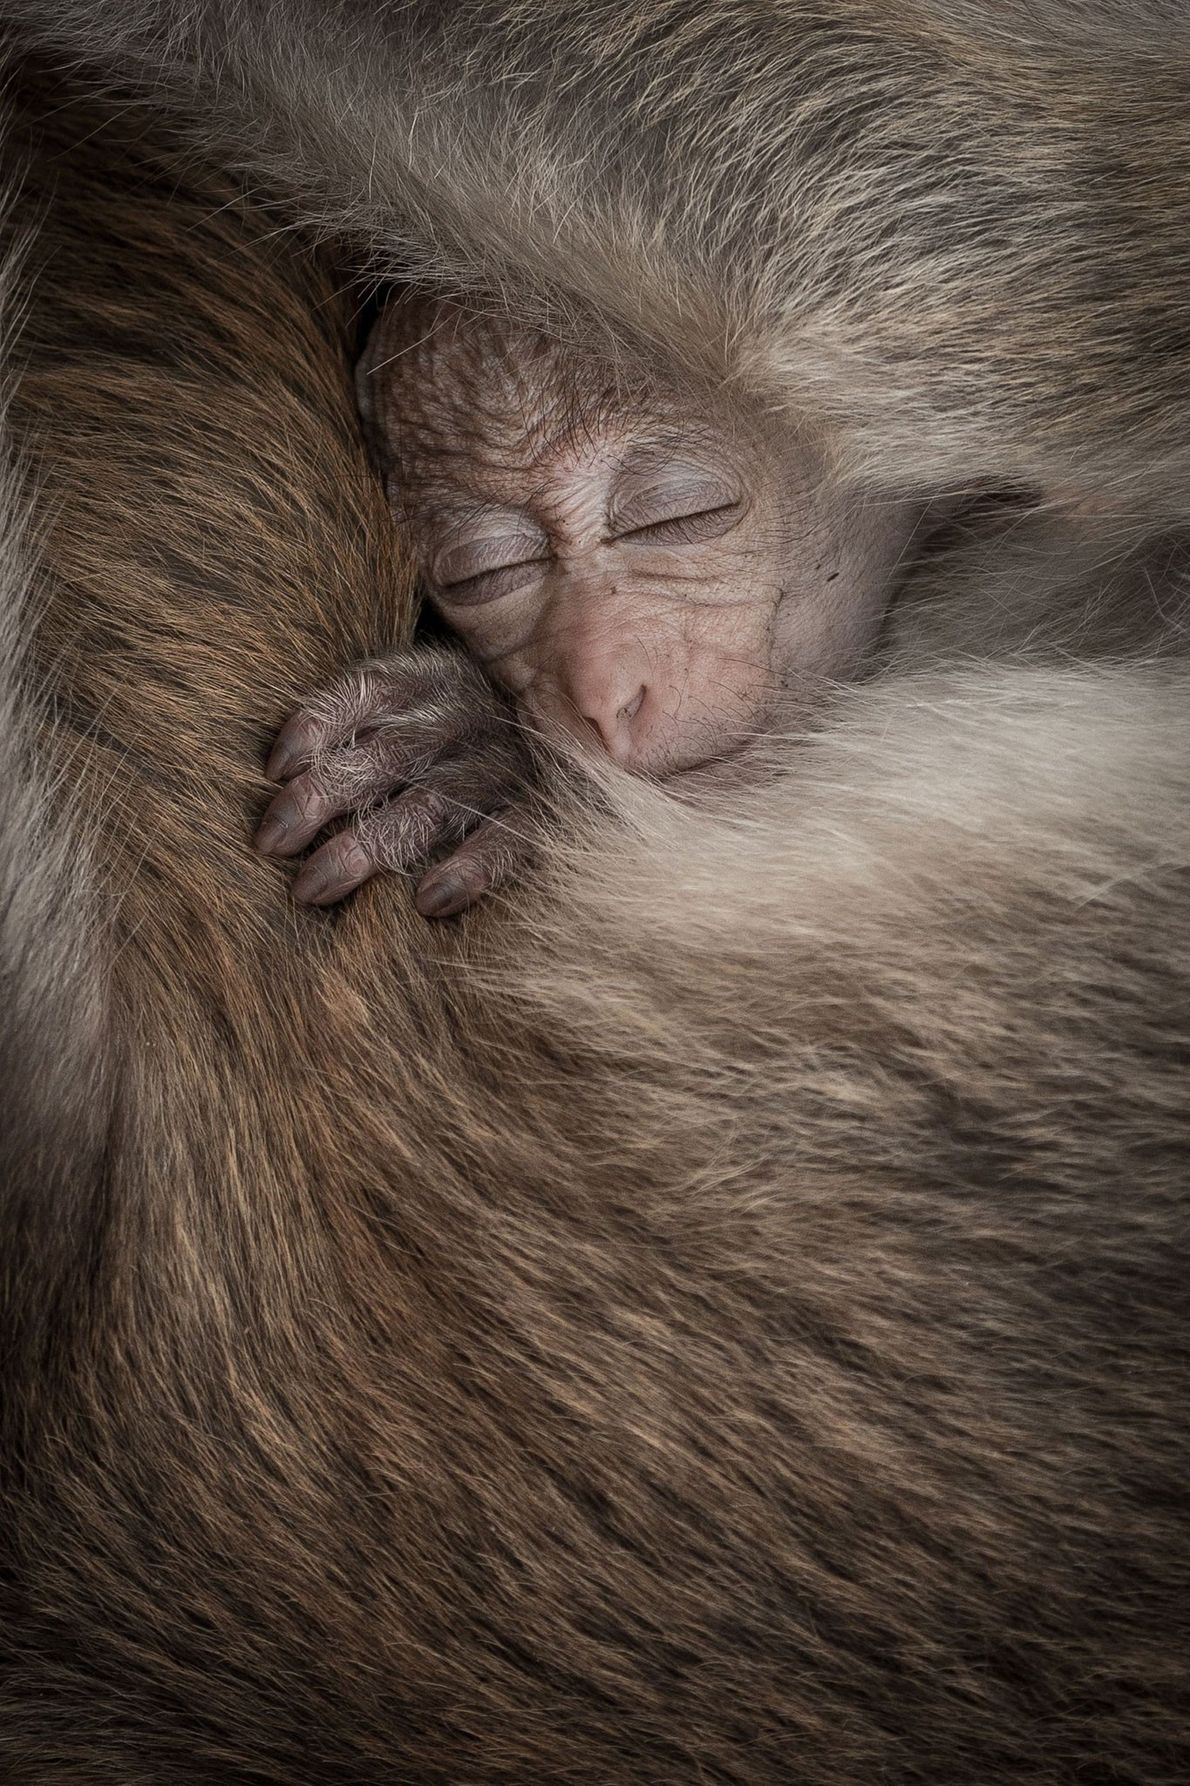 Your Shot photographer Senthi Aathavan Sethiverl captured this moment between a baby monkey and its mother ...